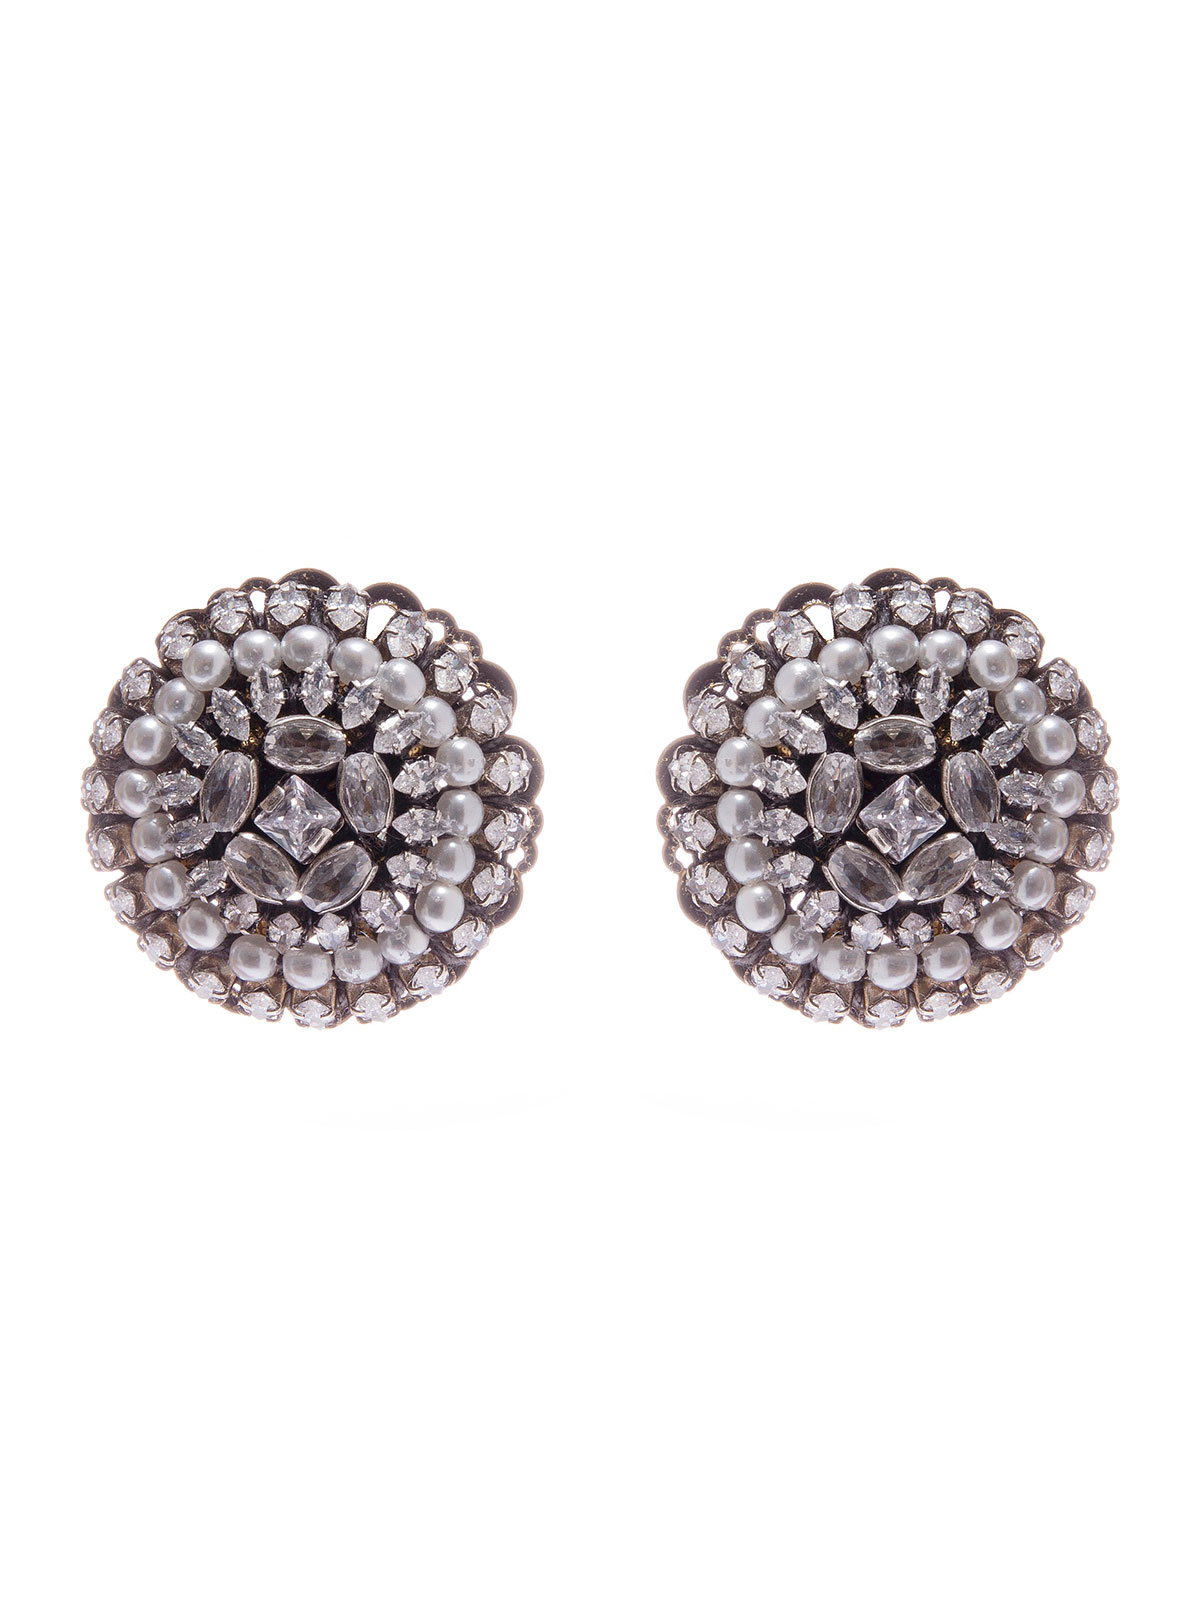 Round crystal earrings